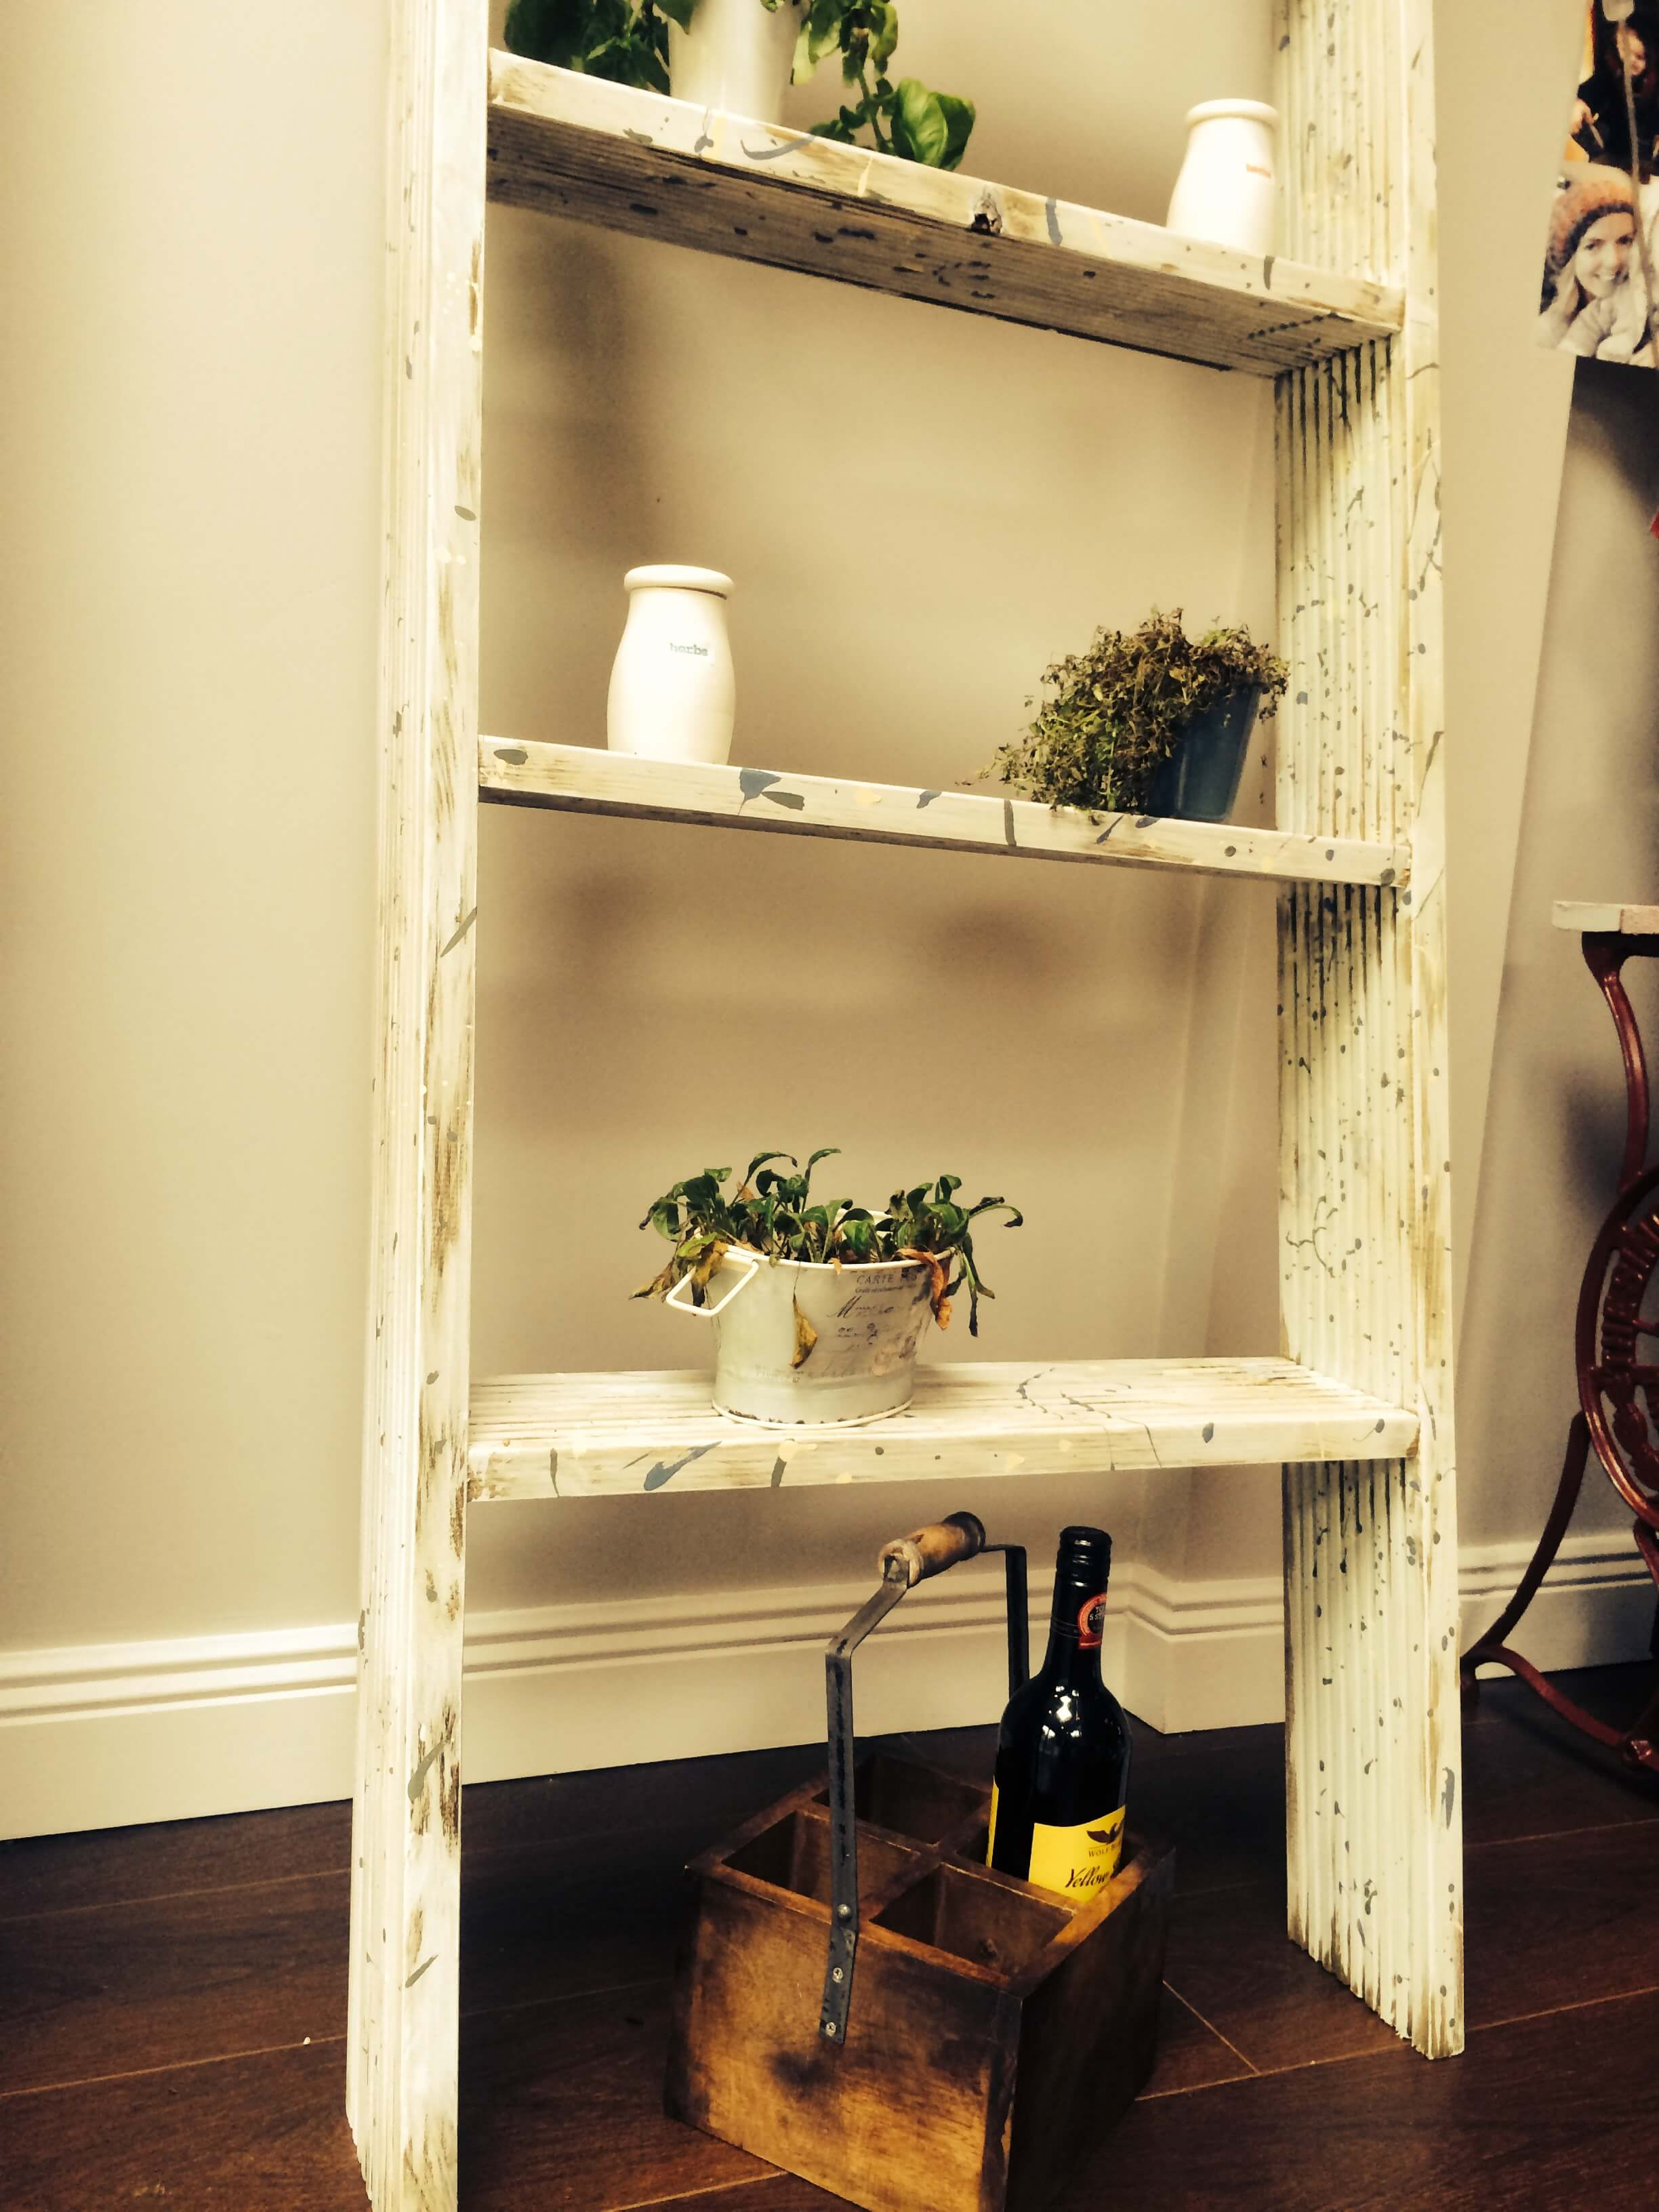 The shelf with added accents, including potted herbs, a wine holder, and dried herb containers.